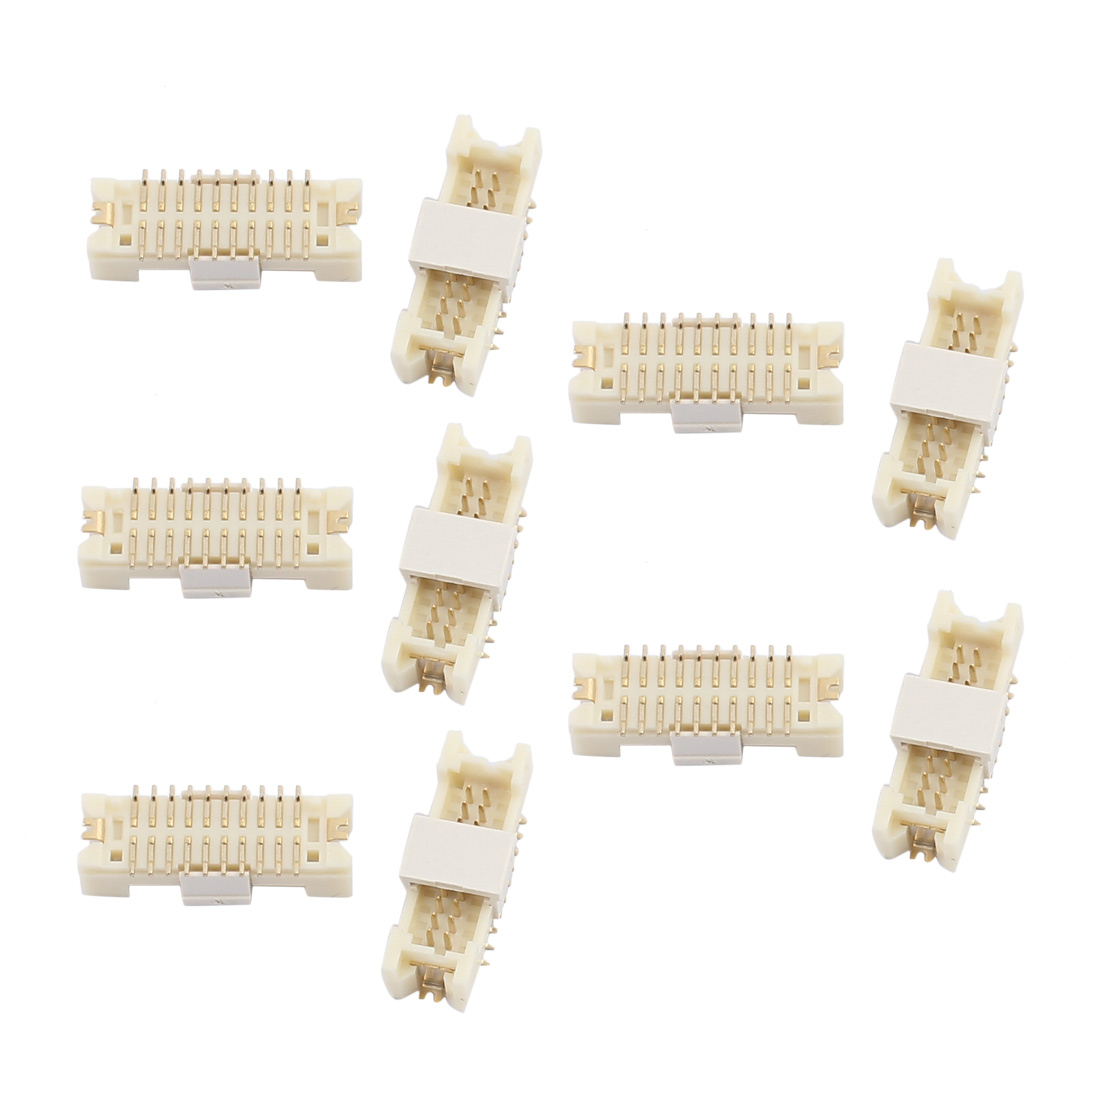 10Pcs 1.25mm Pitch Double Row 2x10Terminals Horizontal Patch DF13 Connector White